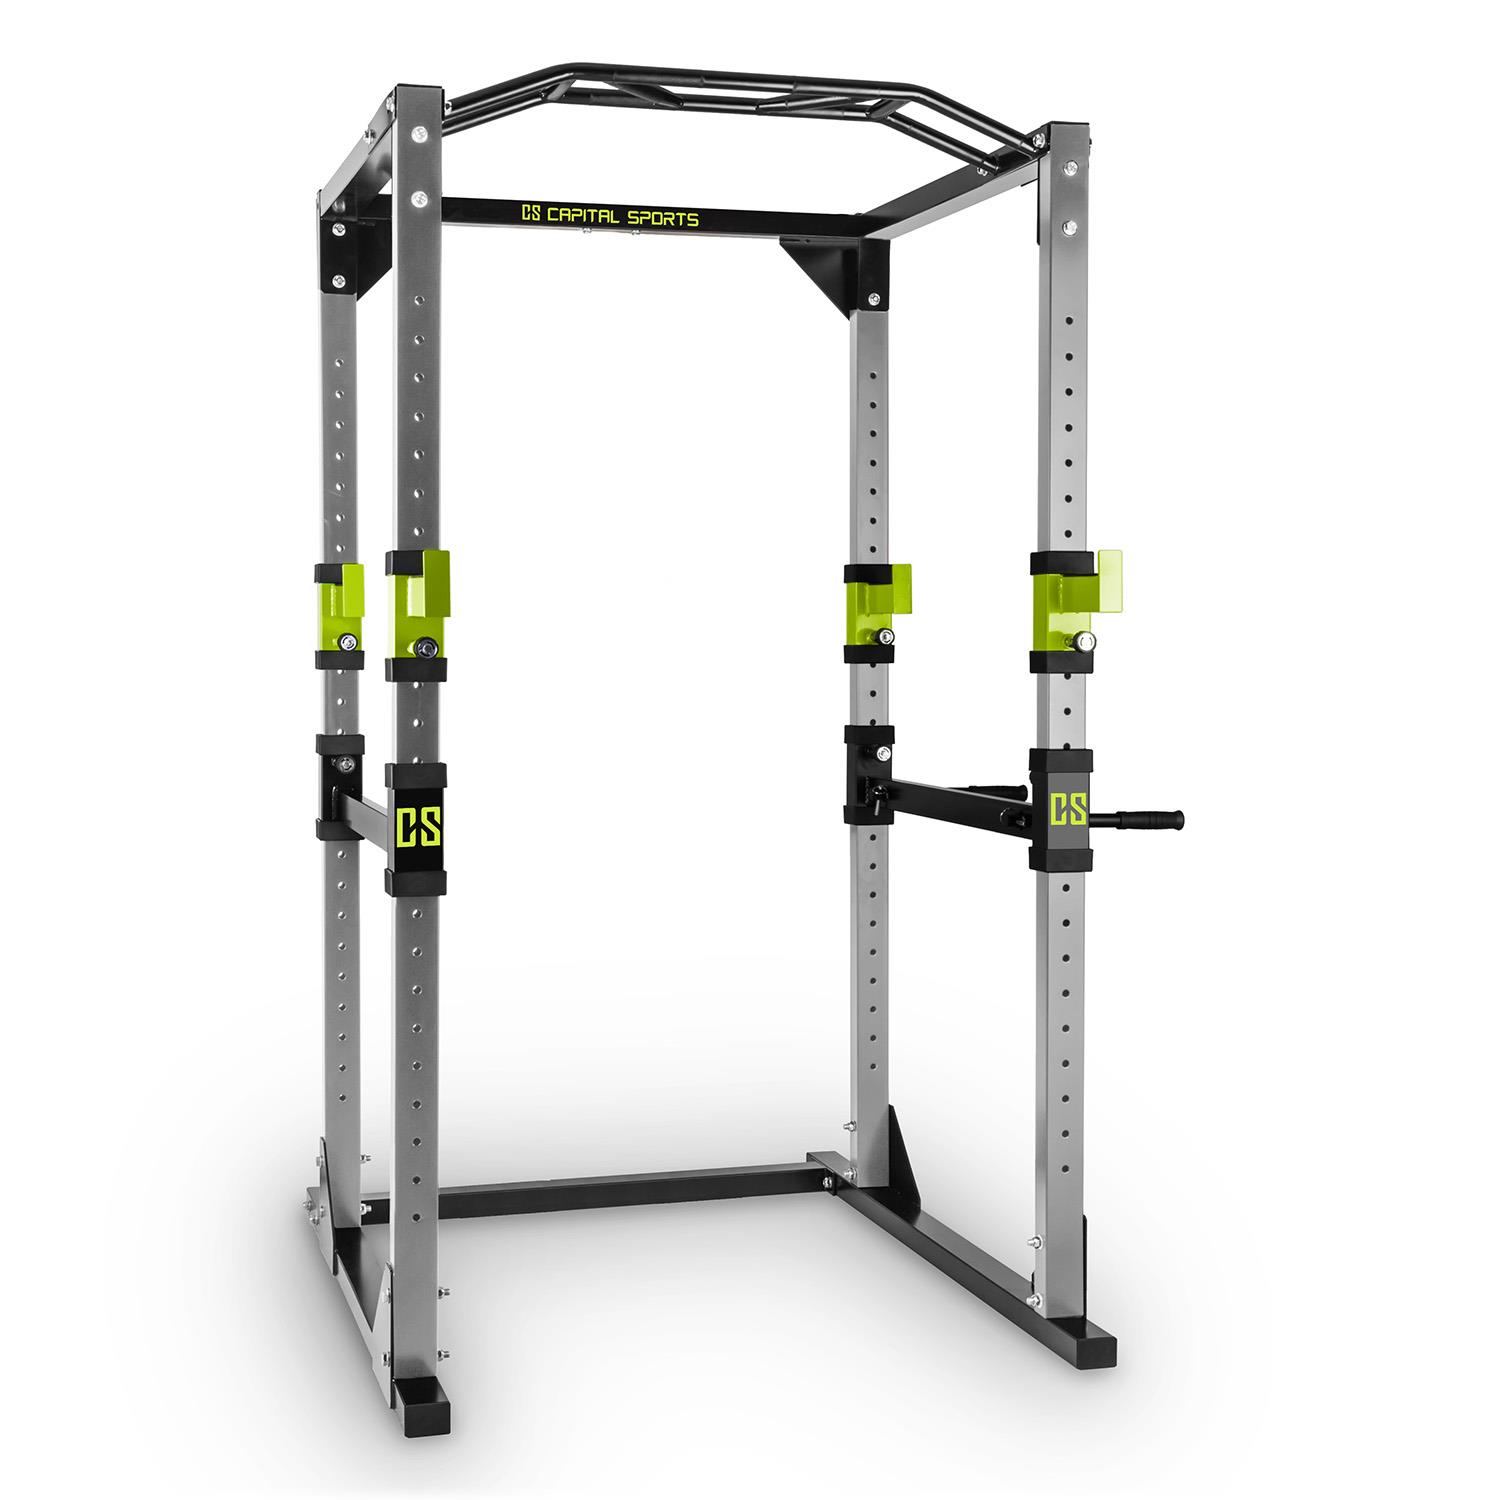 power steel rack square weight lifting multi gym home pull. Black Bedroom Furniture Sets. Home Design Ideas